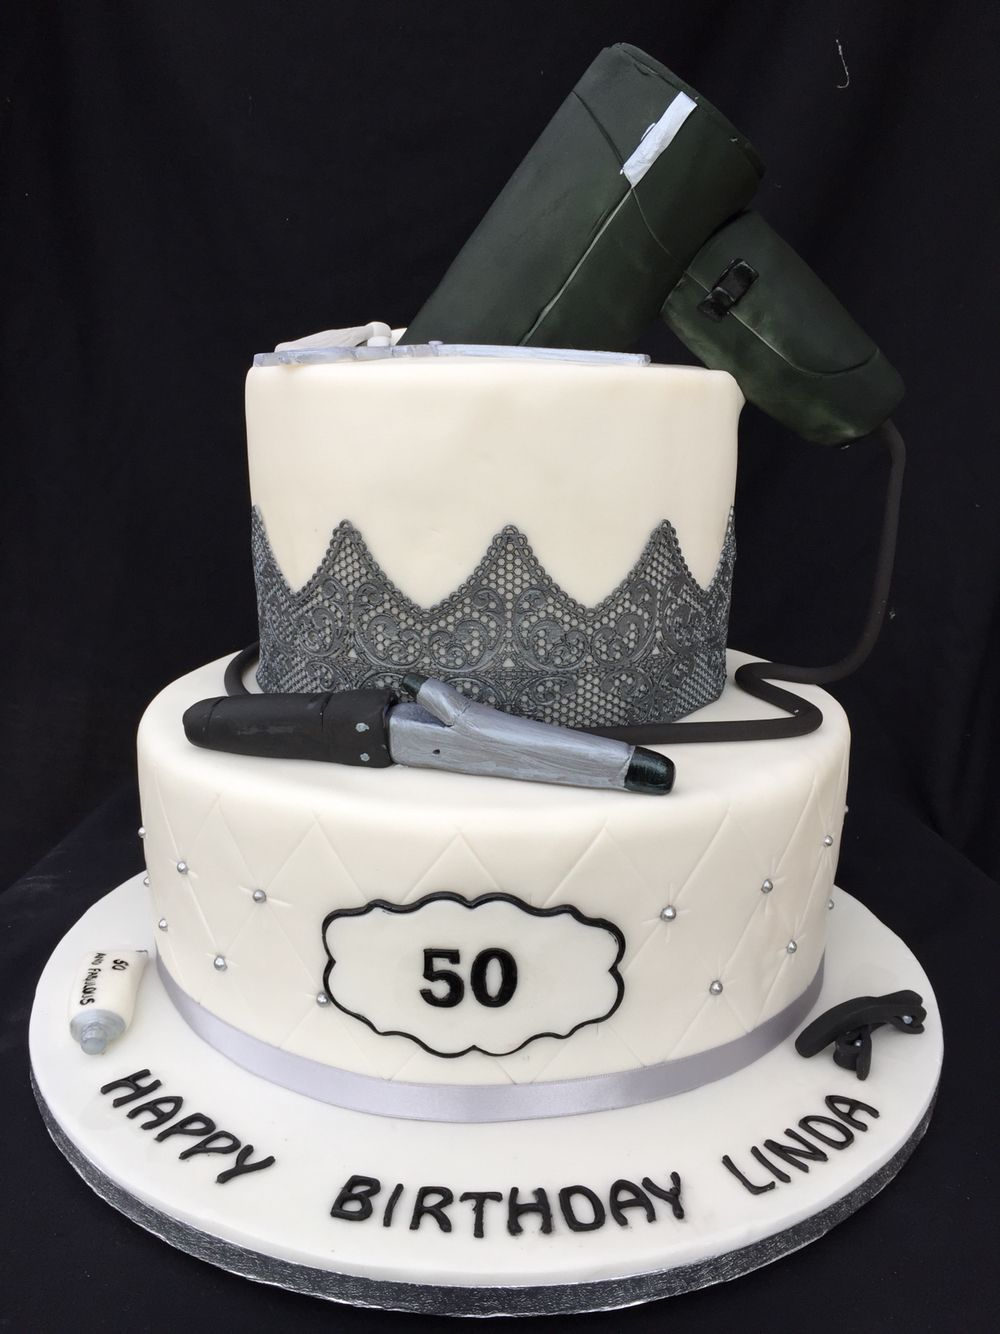 3 Tier 50th Birthday Cake With A Hairdresser Theme 18th Birthday Cake Cake 50th Birthday Cake